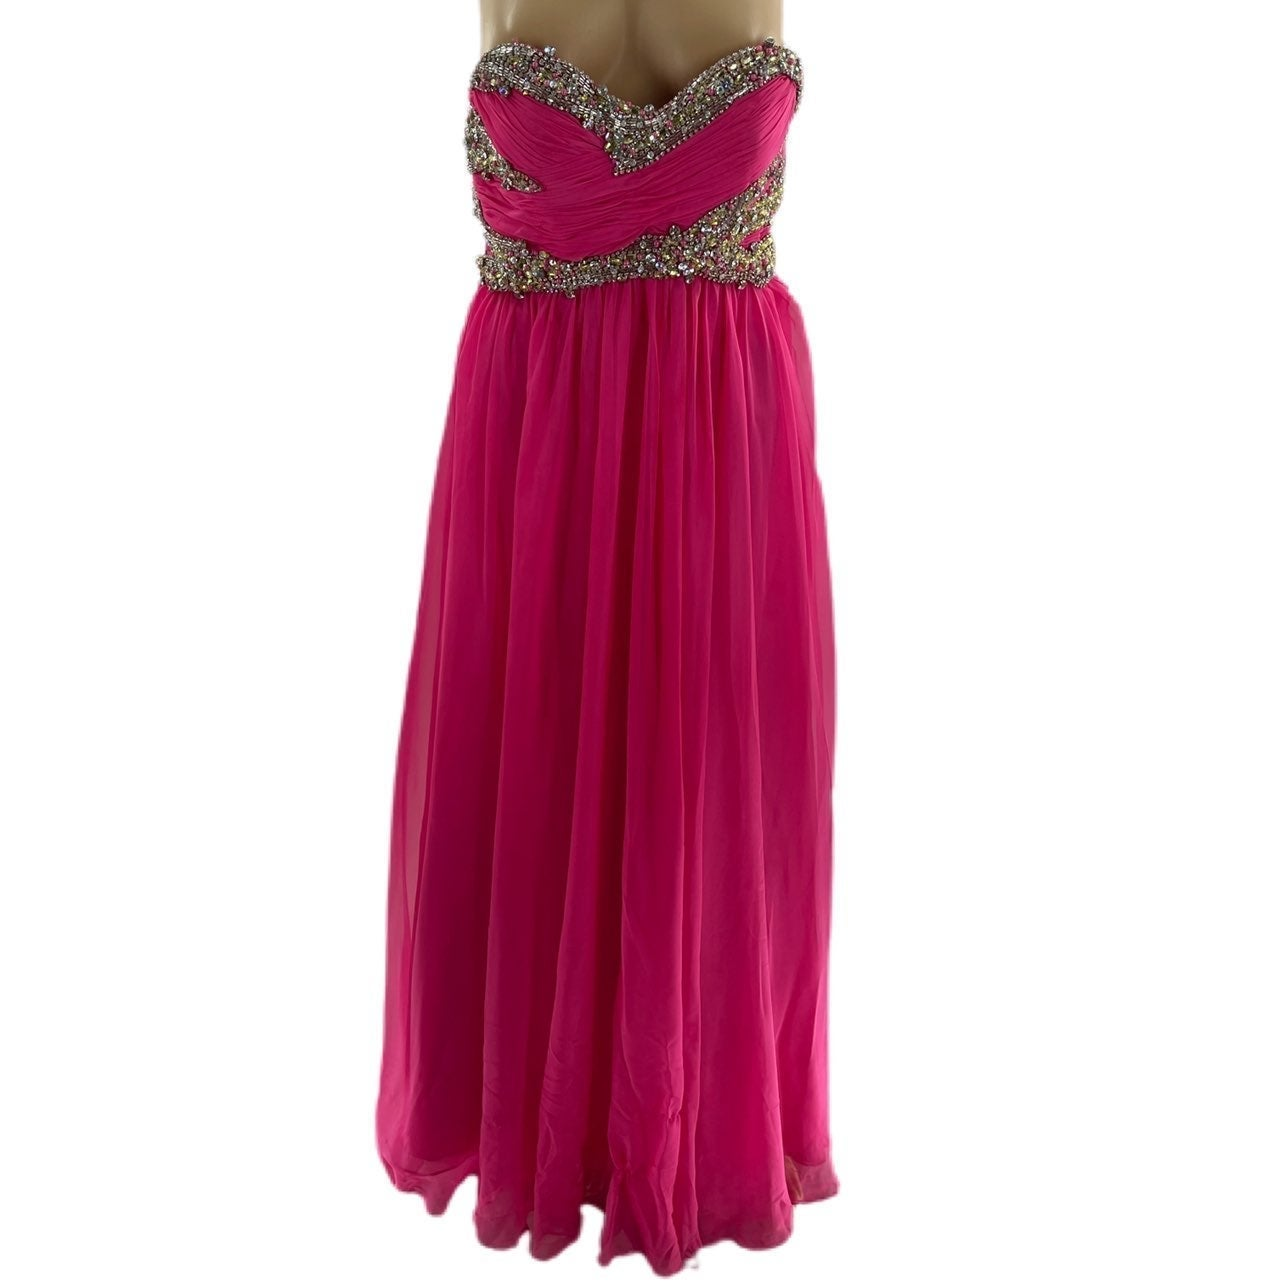 Sherri Hill Pink Beaded Gown Size 2